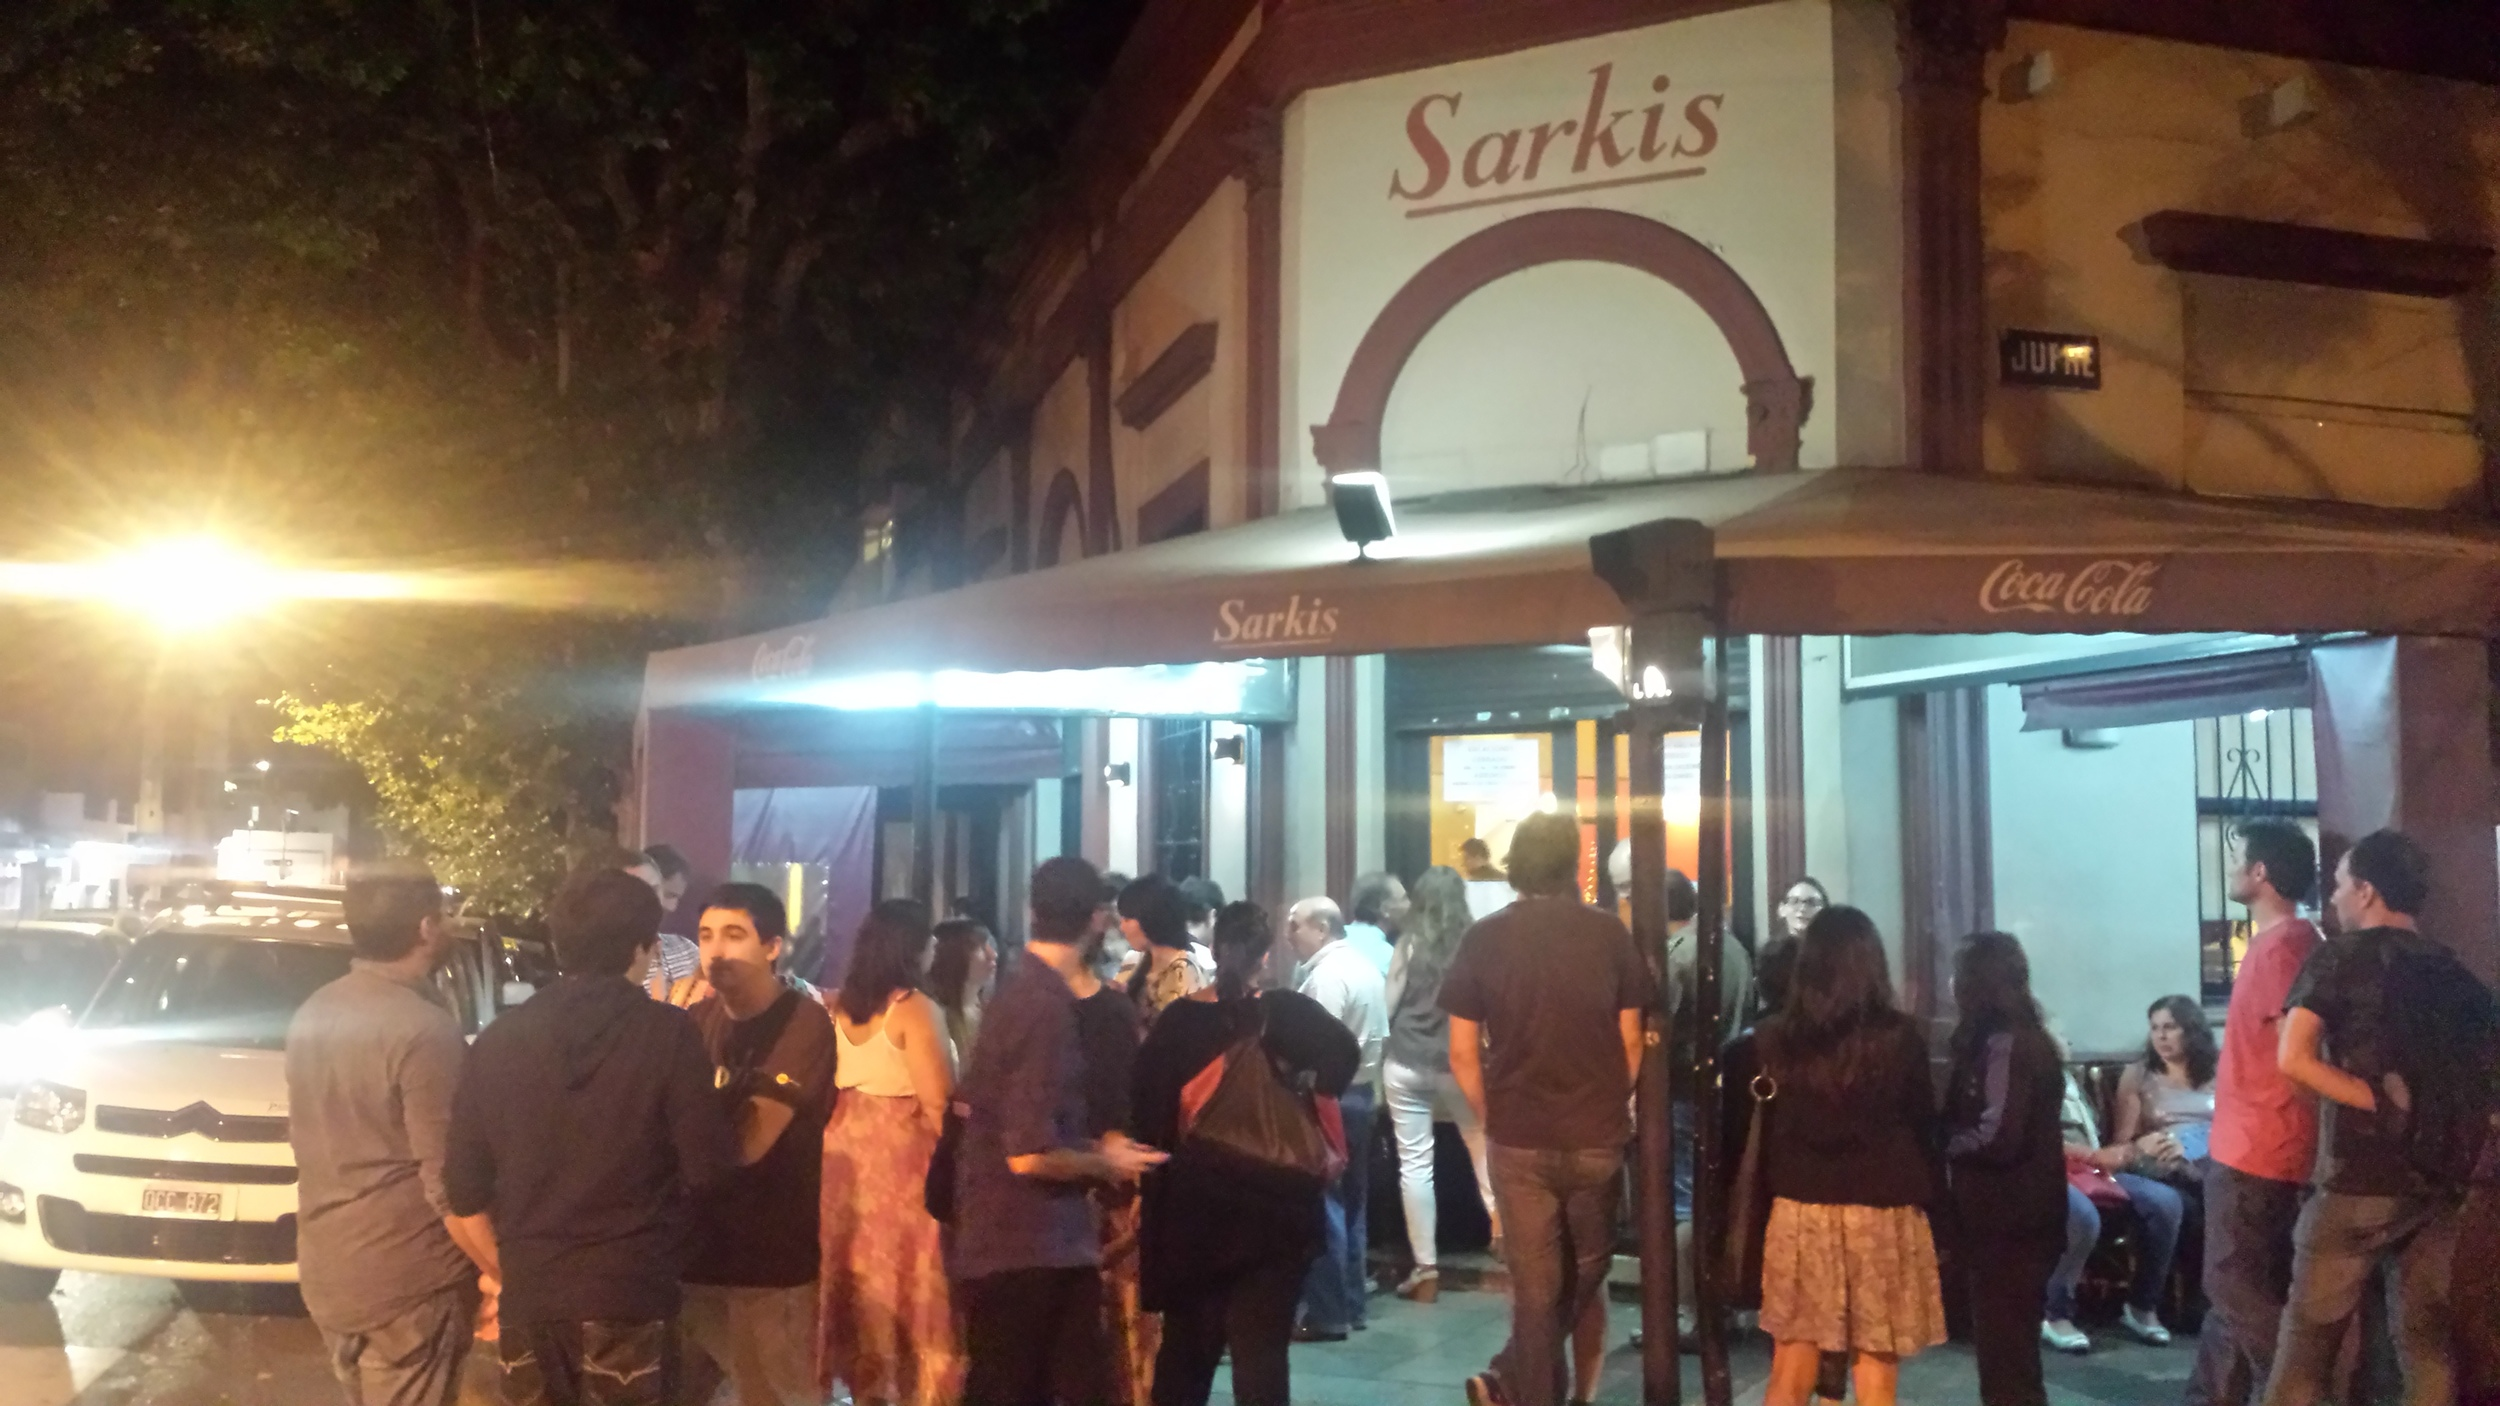 Waiting outside Sarkis in Buenos Aires, Argentina